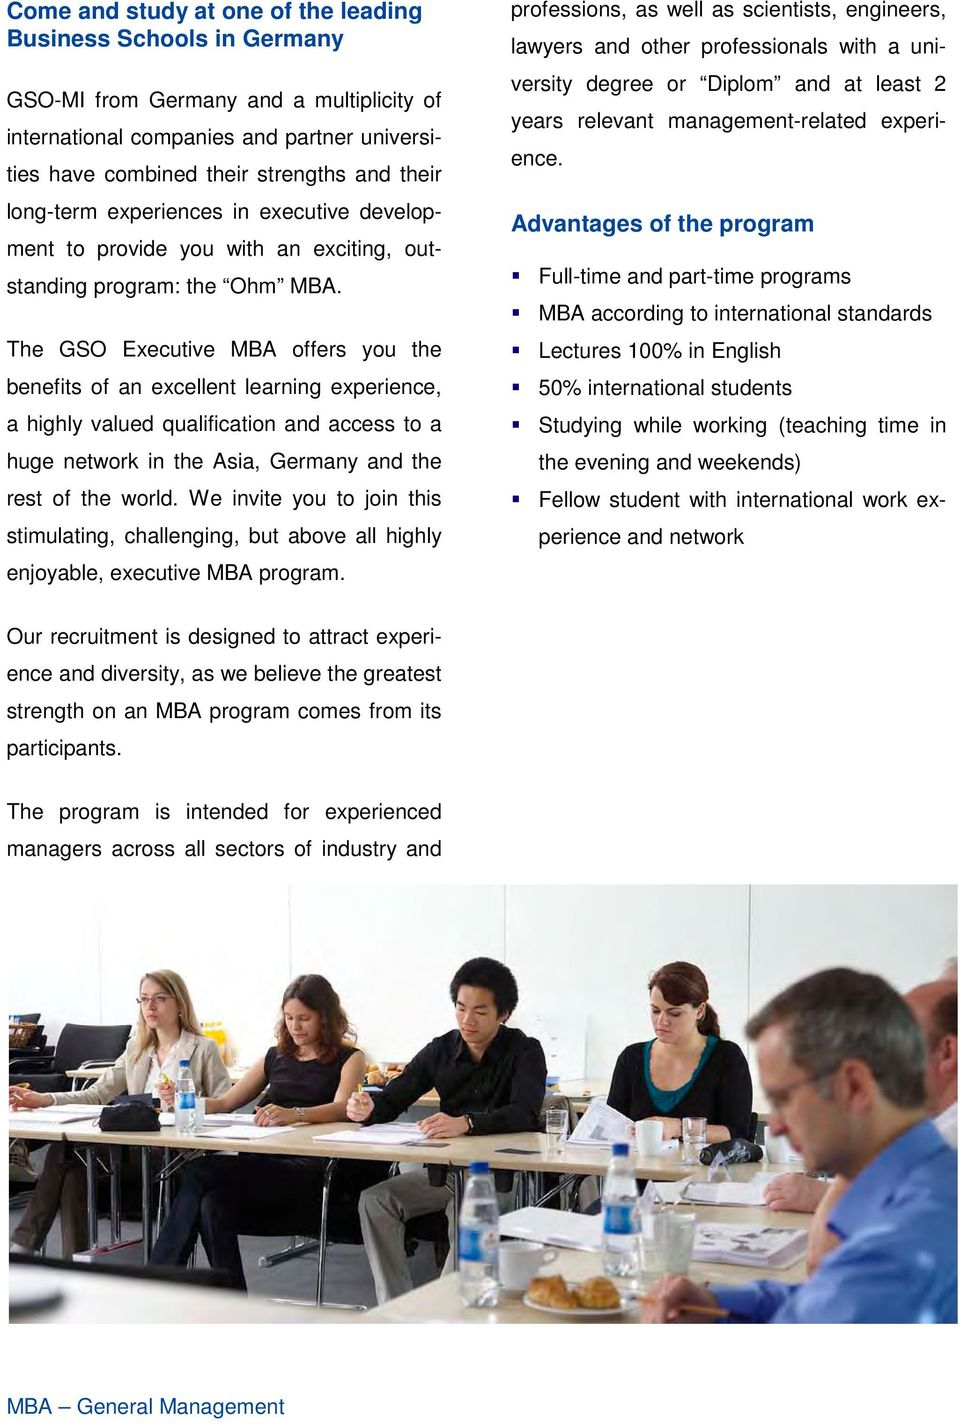 The GSO Executive MBA offers you the benefits of an excellent learning experience, a highly valued qualification and access to a huge network in the Asia, Germany and the rest of the world.